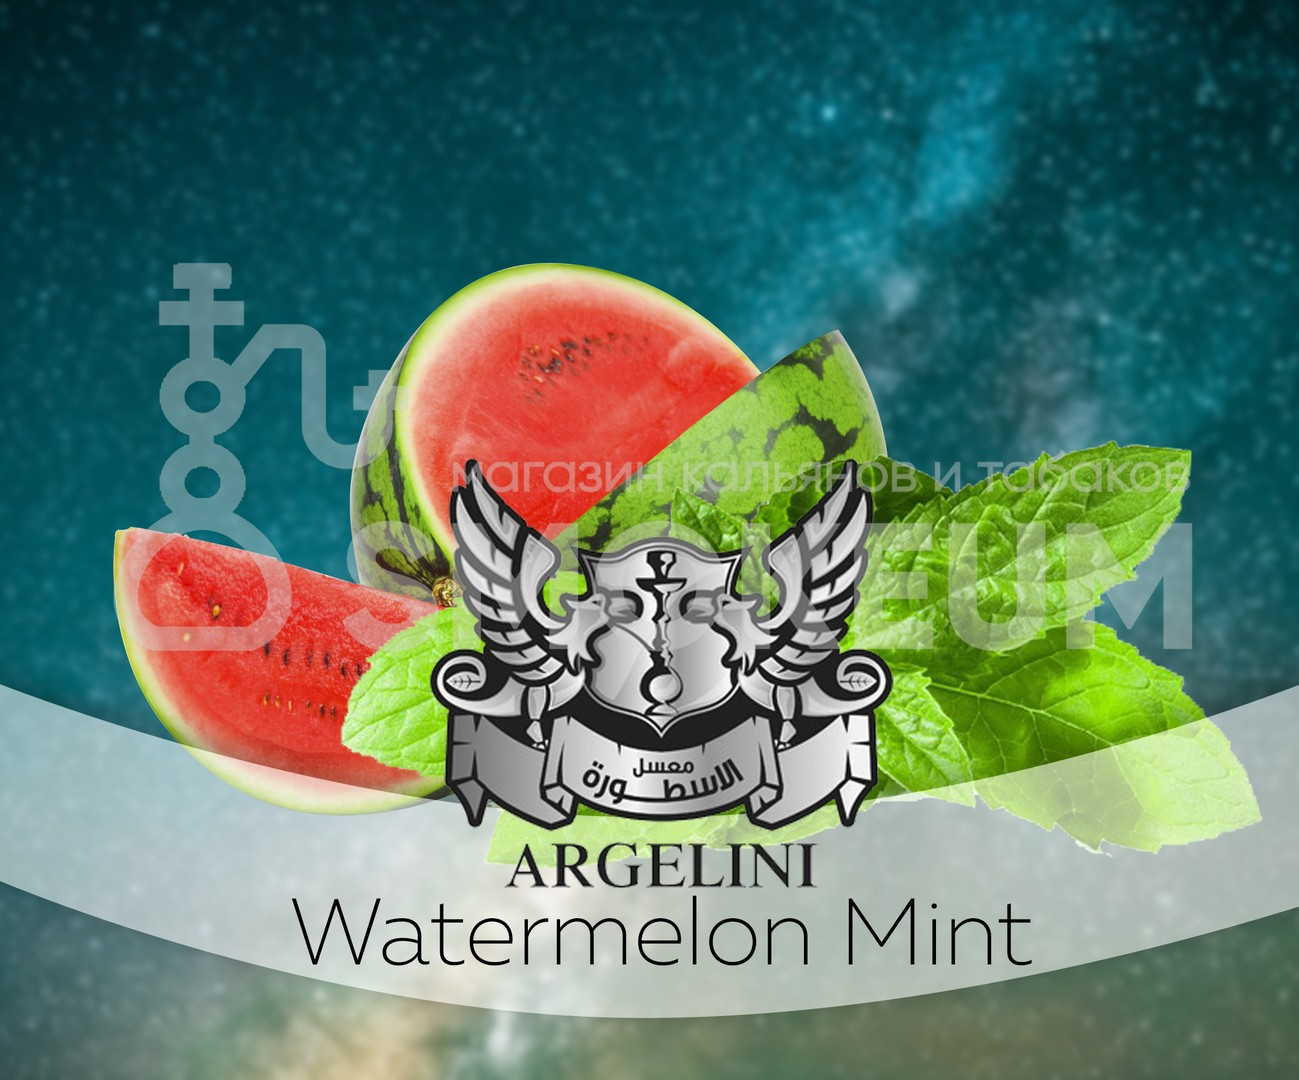 Табак Argelini - Watermelon Mint (Арбуз и Мята) 50 гр